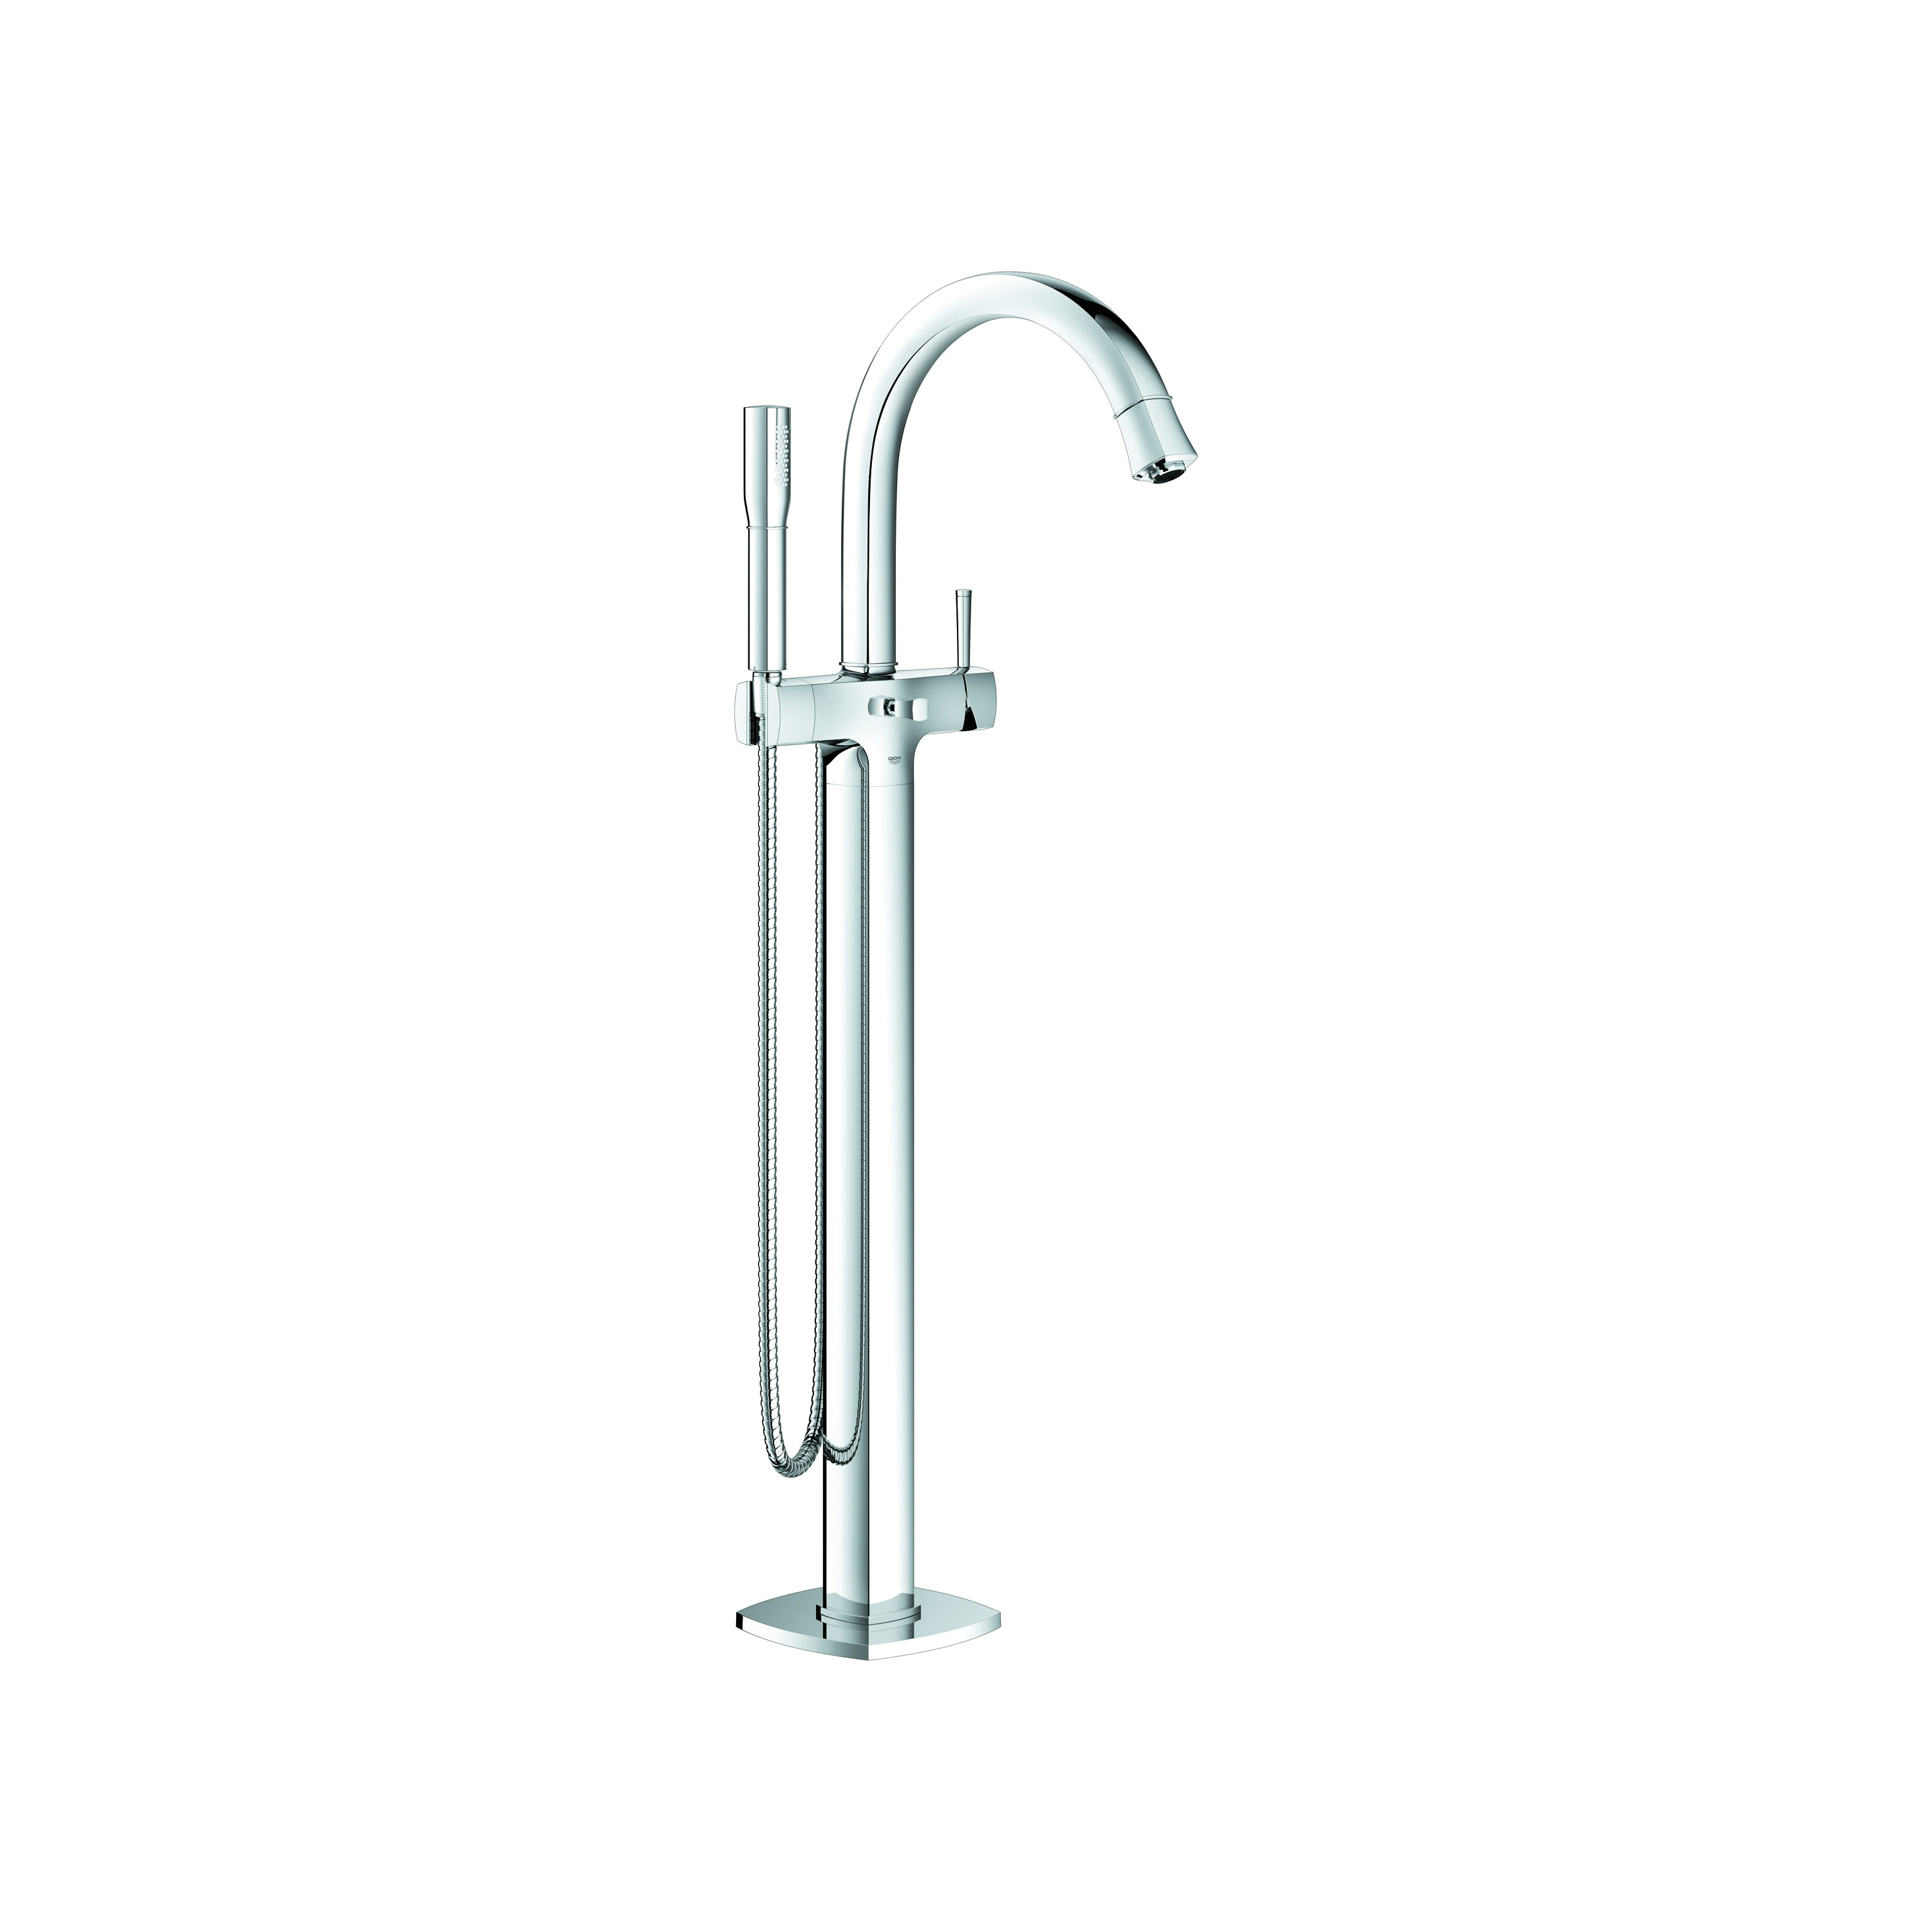 GROHE 23318000 Grandera™ Tub Filler, 2 gpm, StarLight® Chrome Plated, 1 Handles, Hand Shower Yes/No: Yes, Import